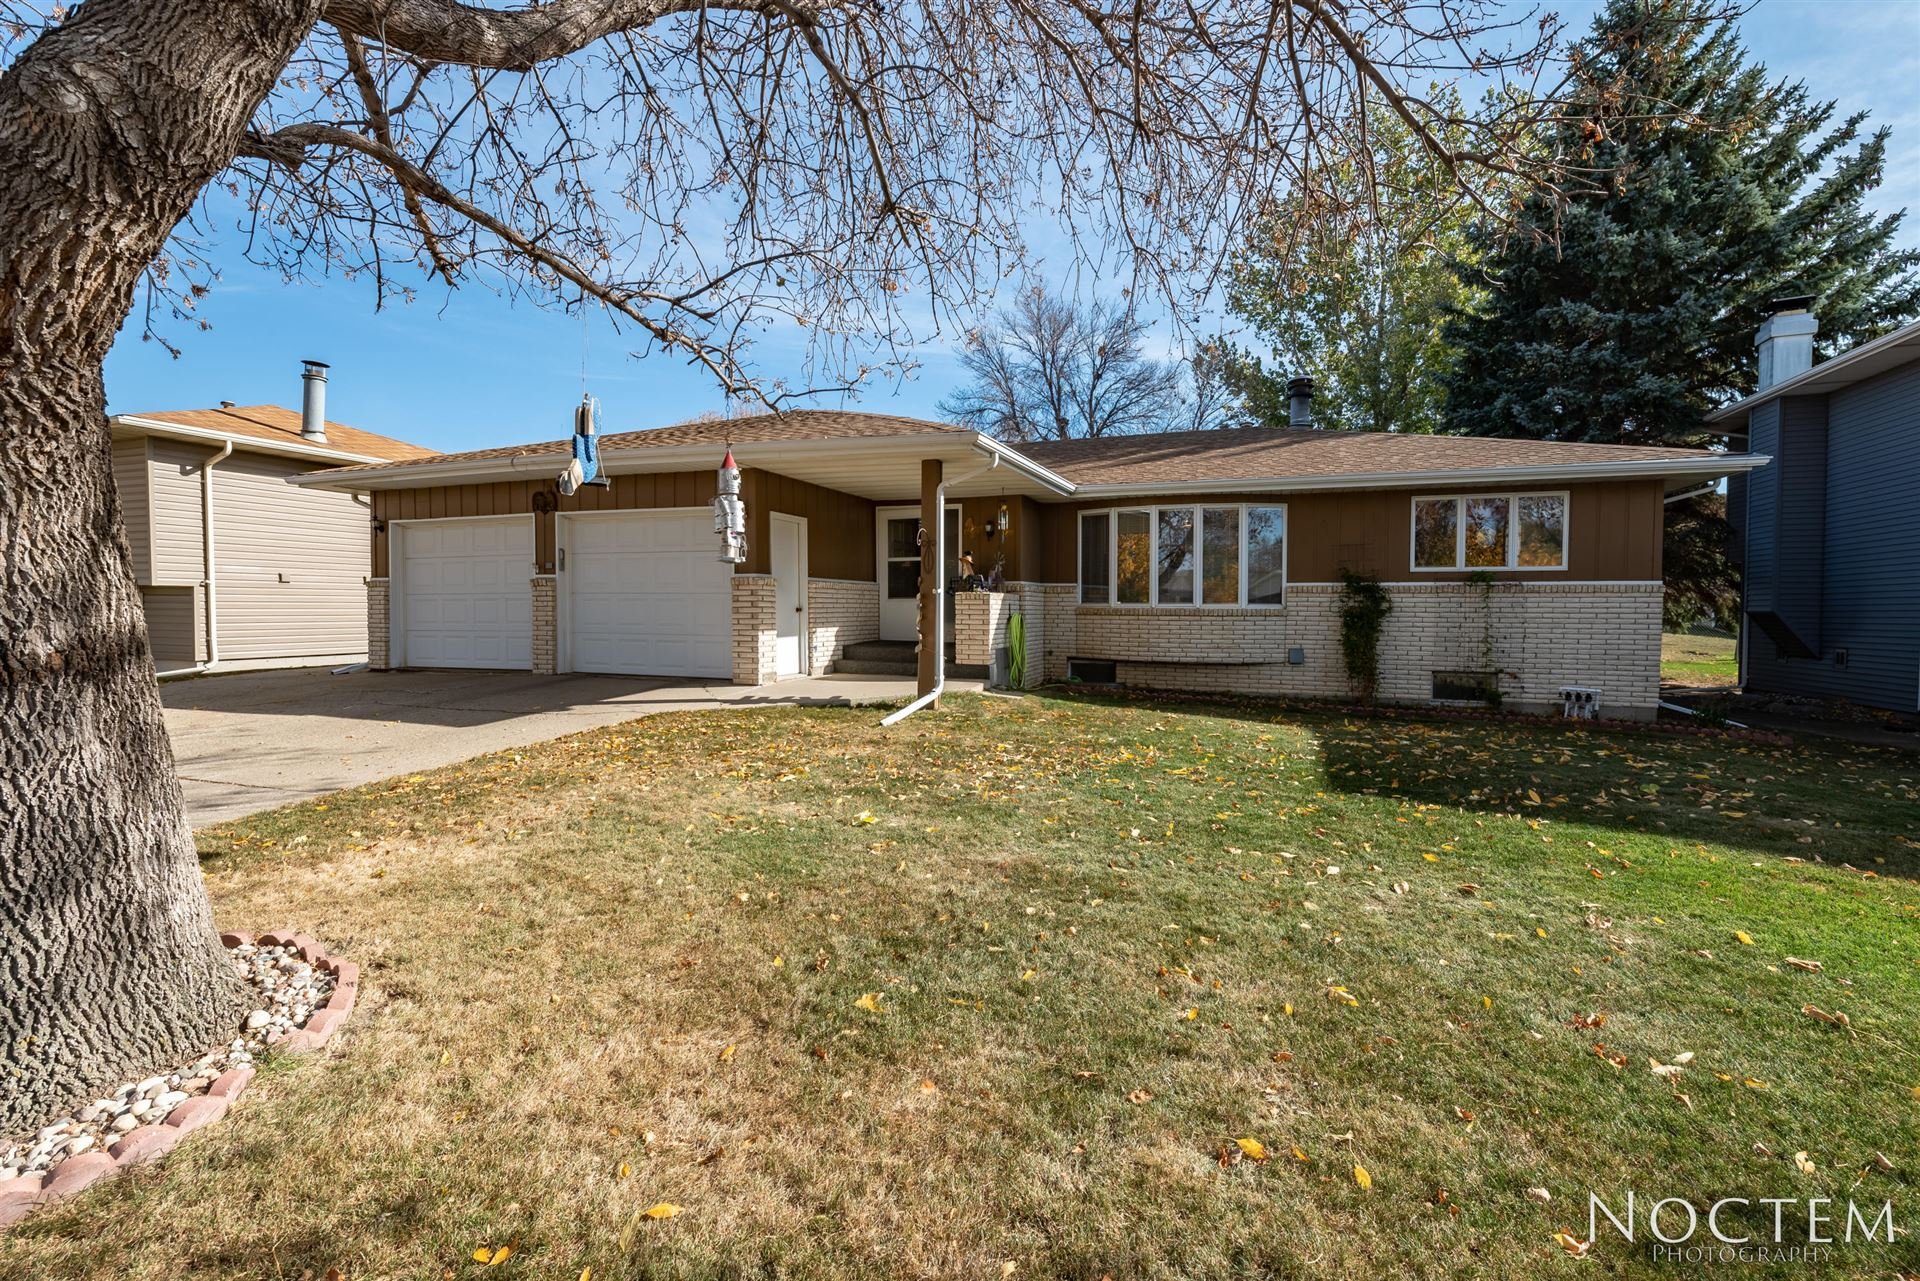 800 6th Avenue NE, Mandan, ND 58554 - #: 408772